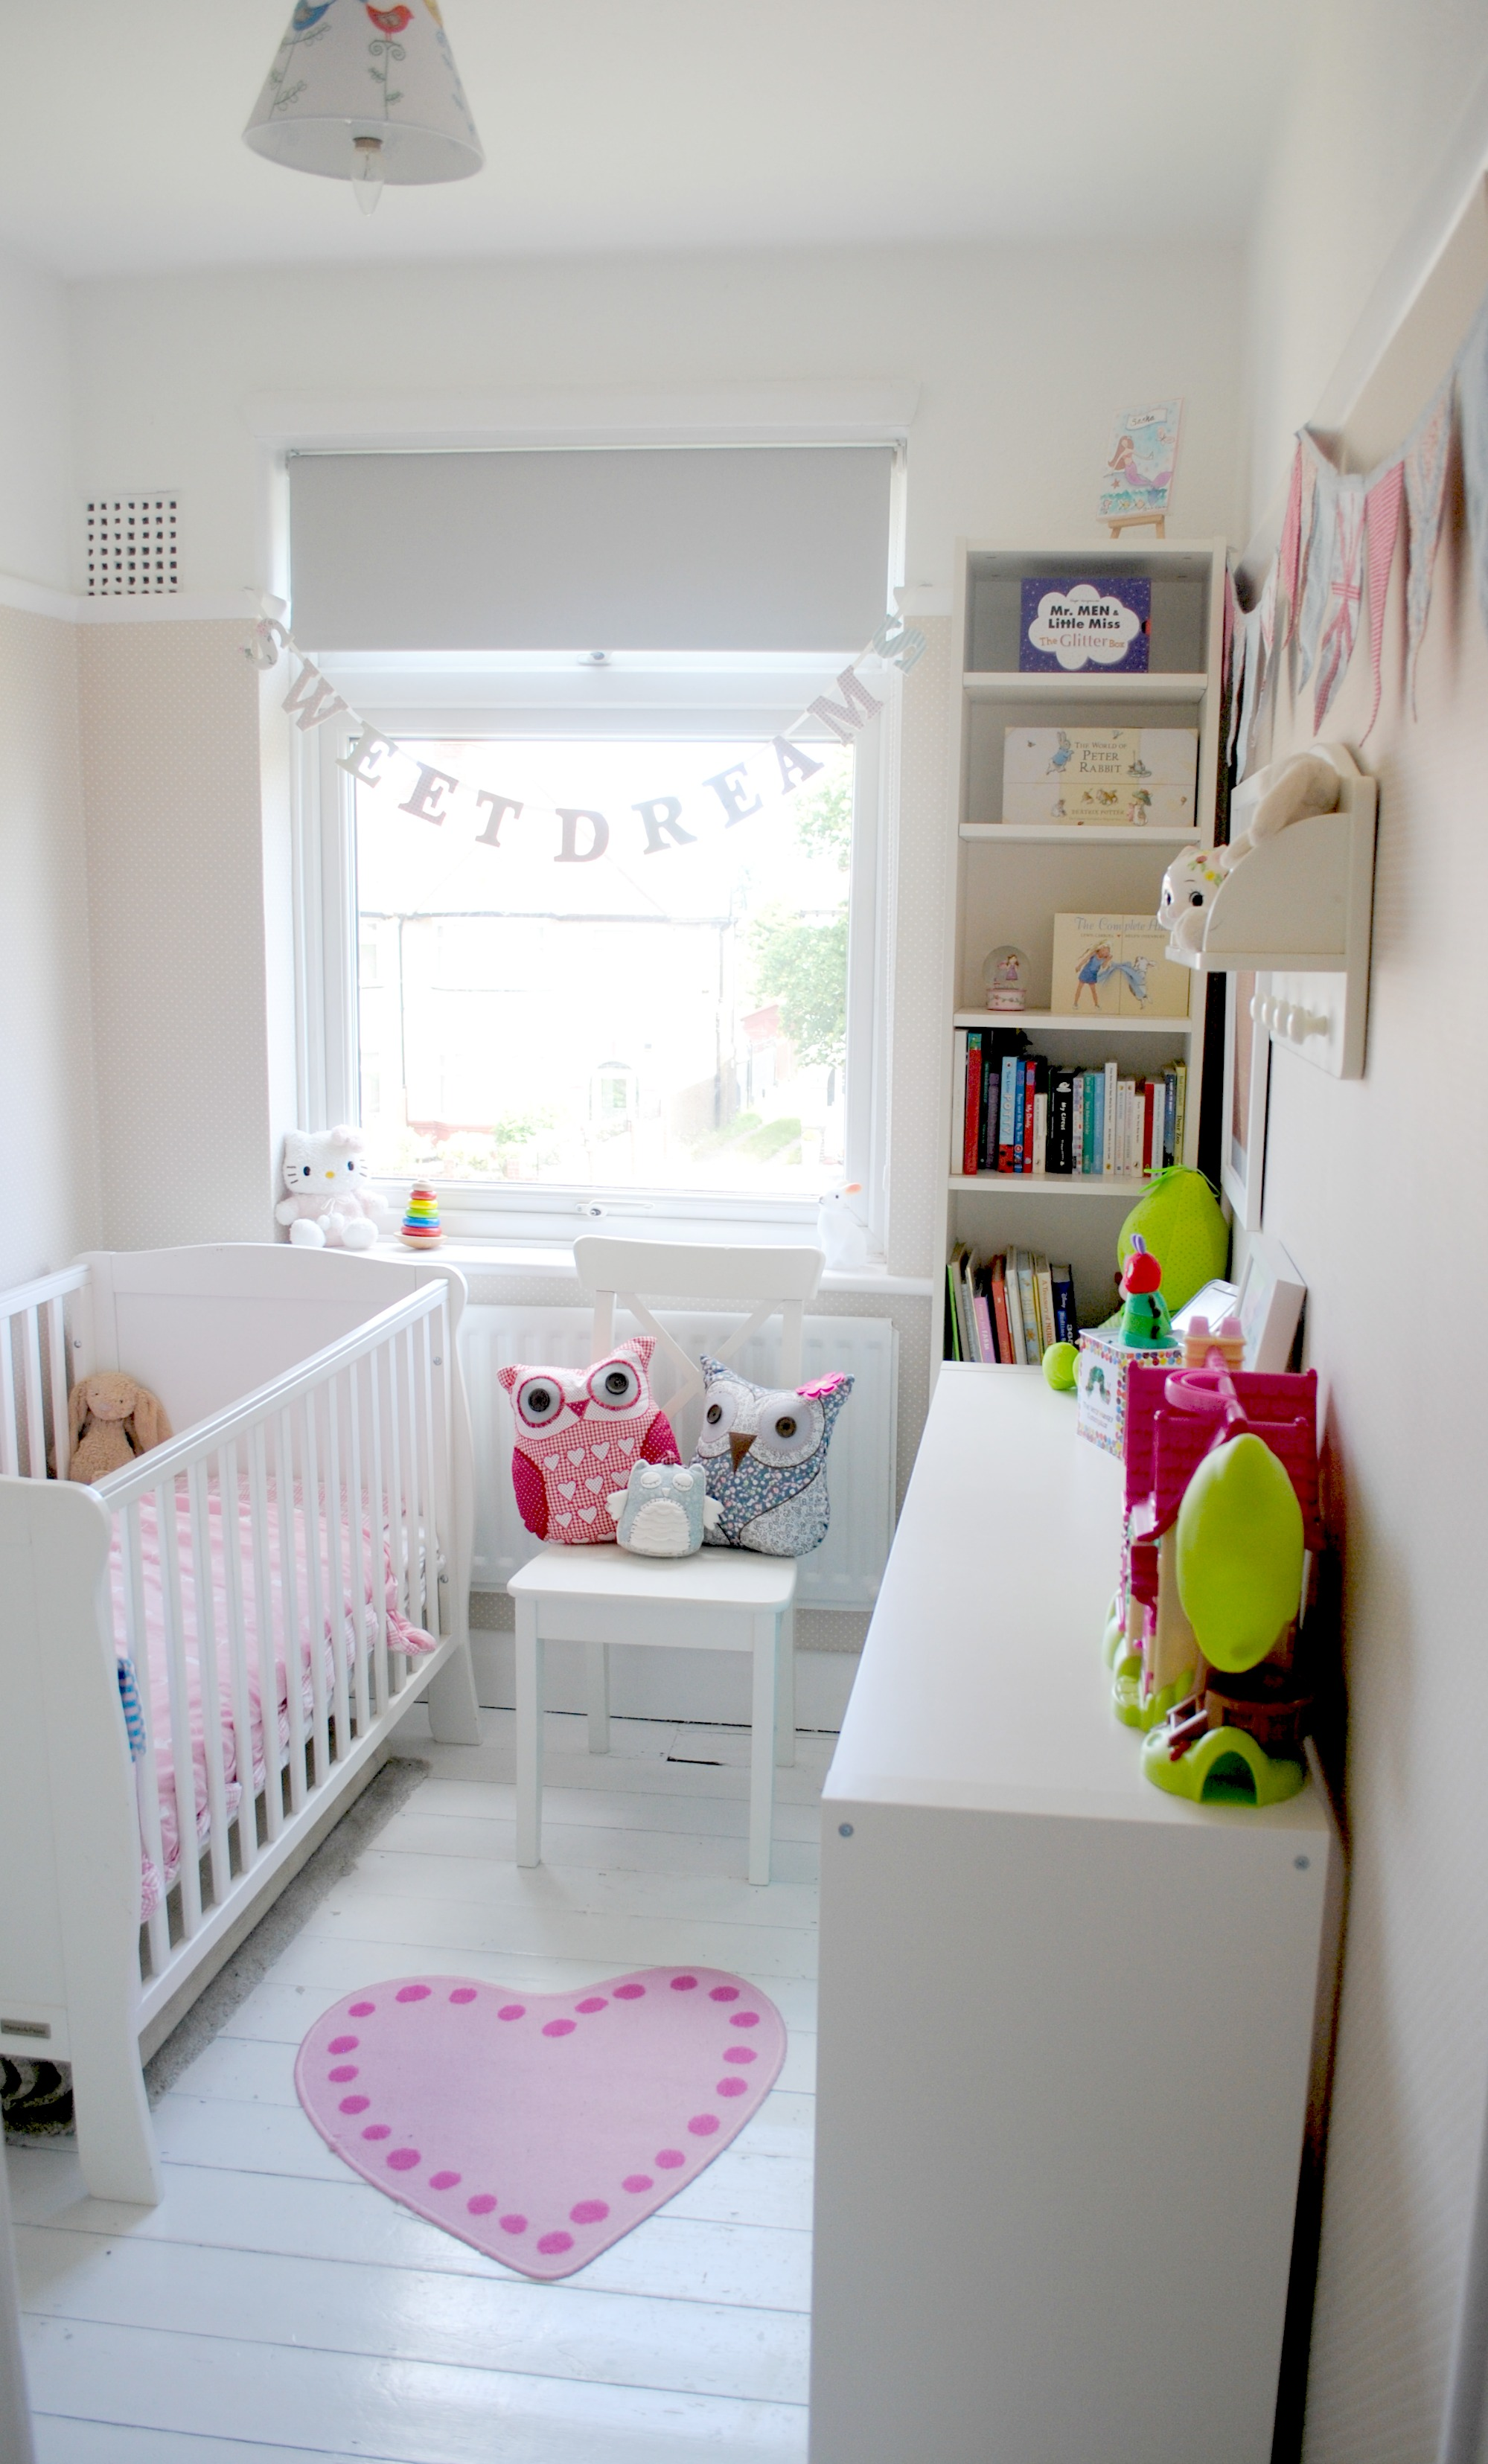 Tiny Bedroom Tour Courtney S Room: The Spirited Puddle Jumper